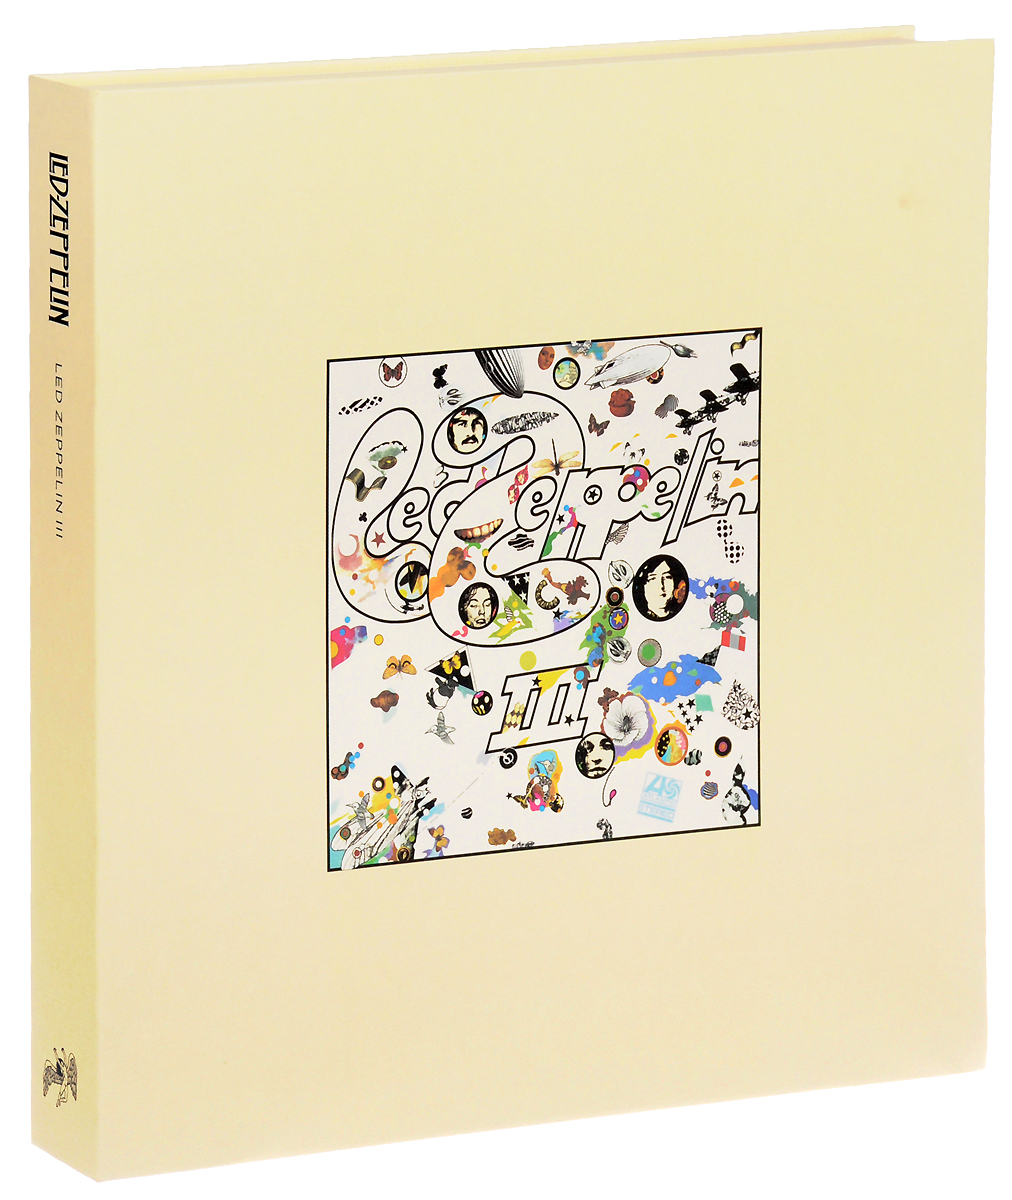 Led Zeppelin Led Zeppelin. Led Zeppelin III. Super Deluxe Edition (2 LP + 2 CD)